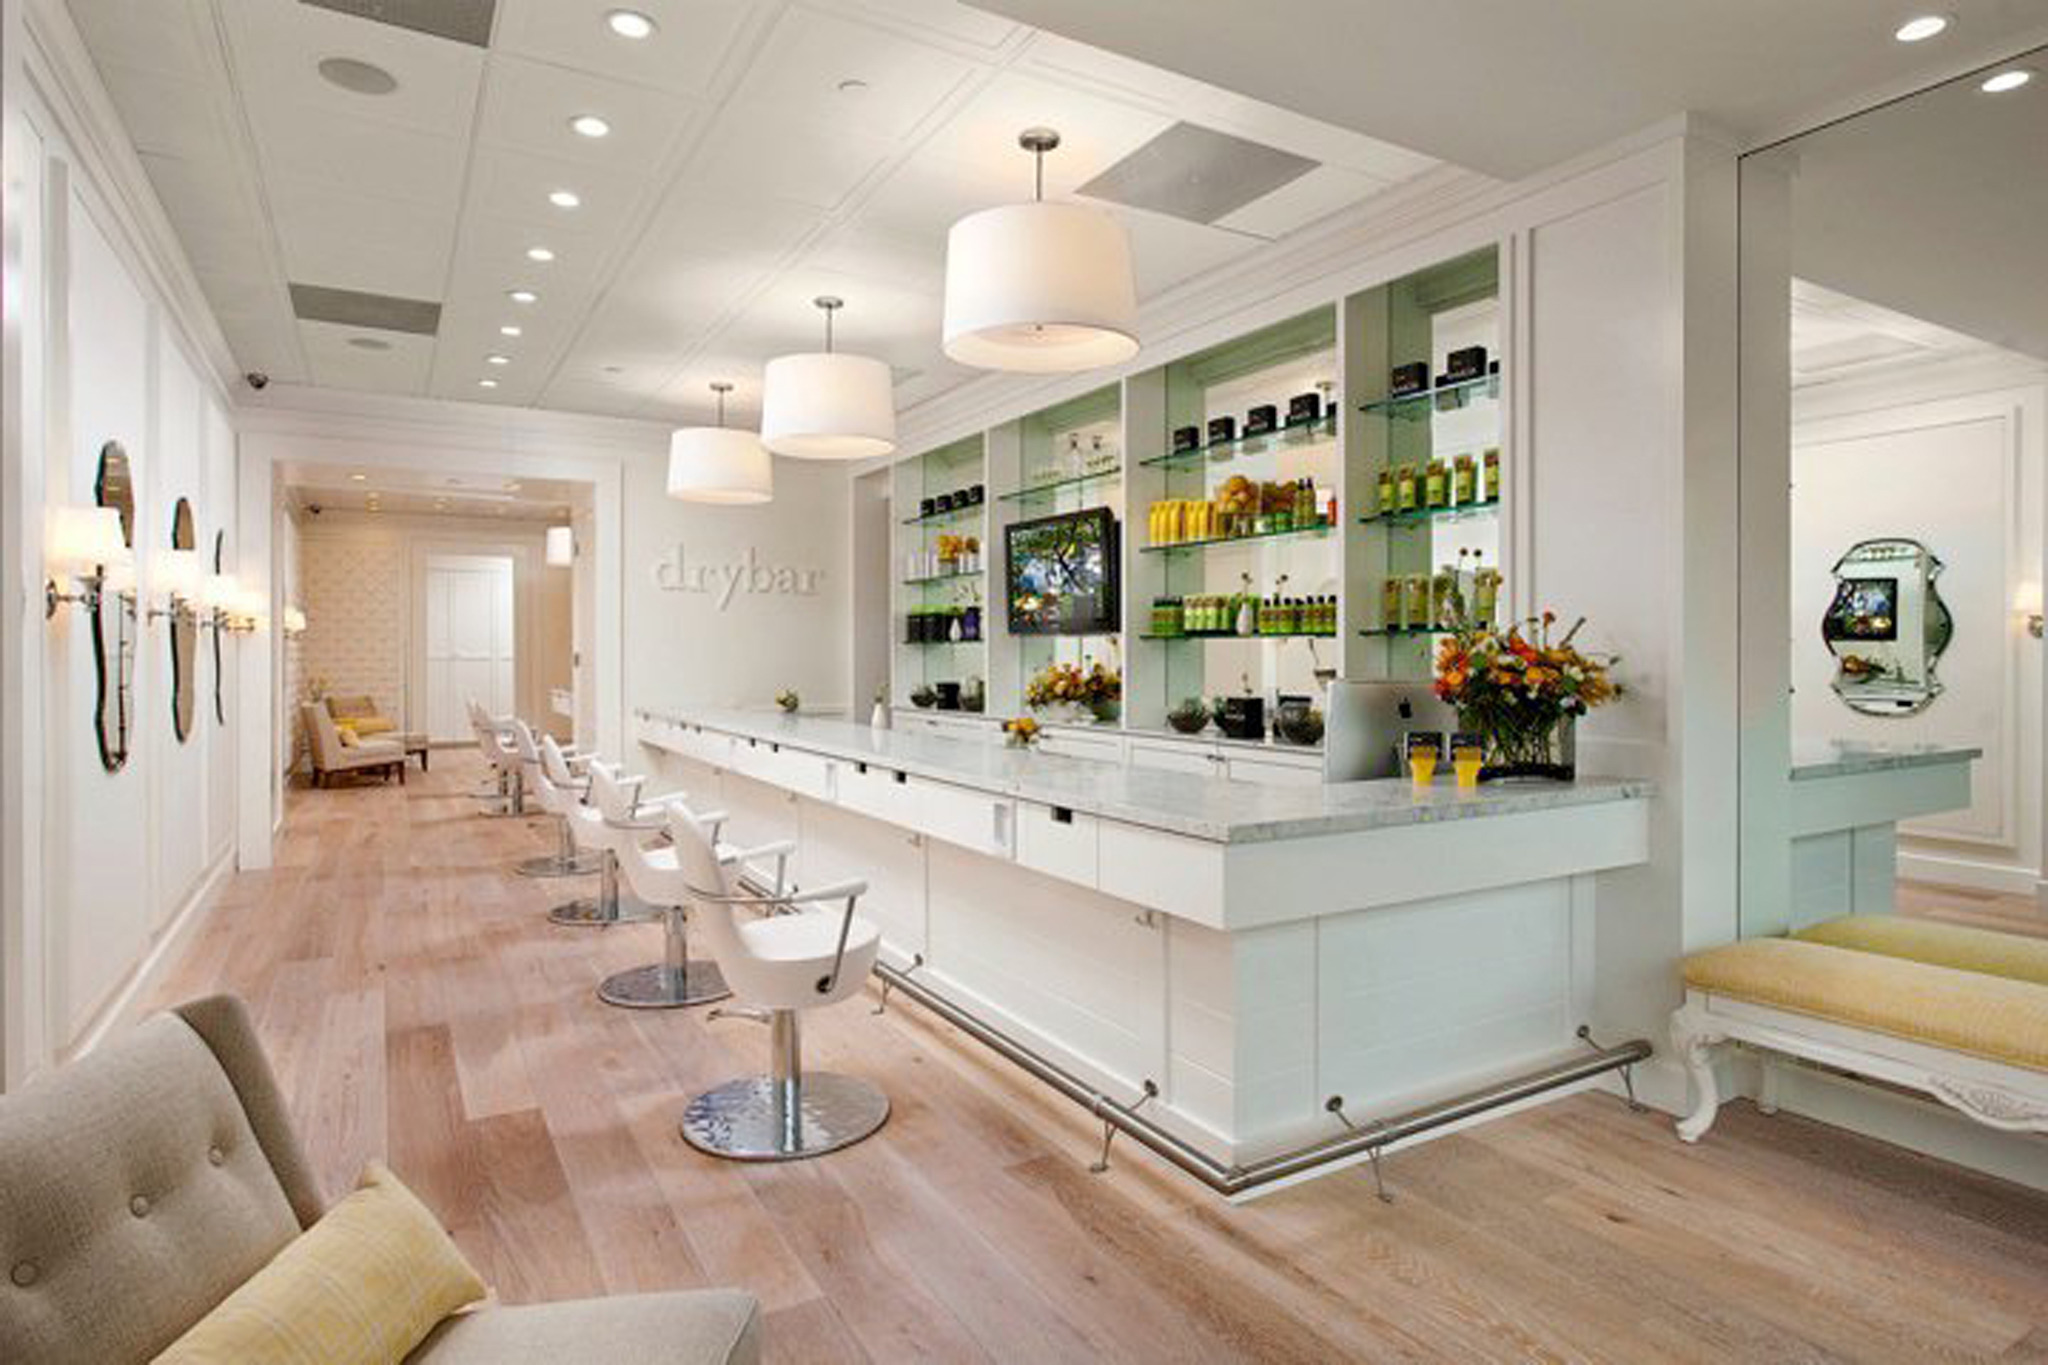 Best blow dry bars in los angeles for Photos salon design